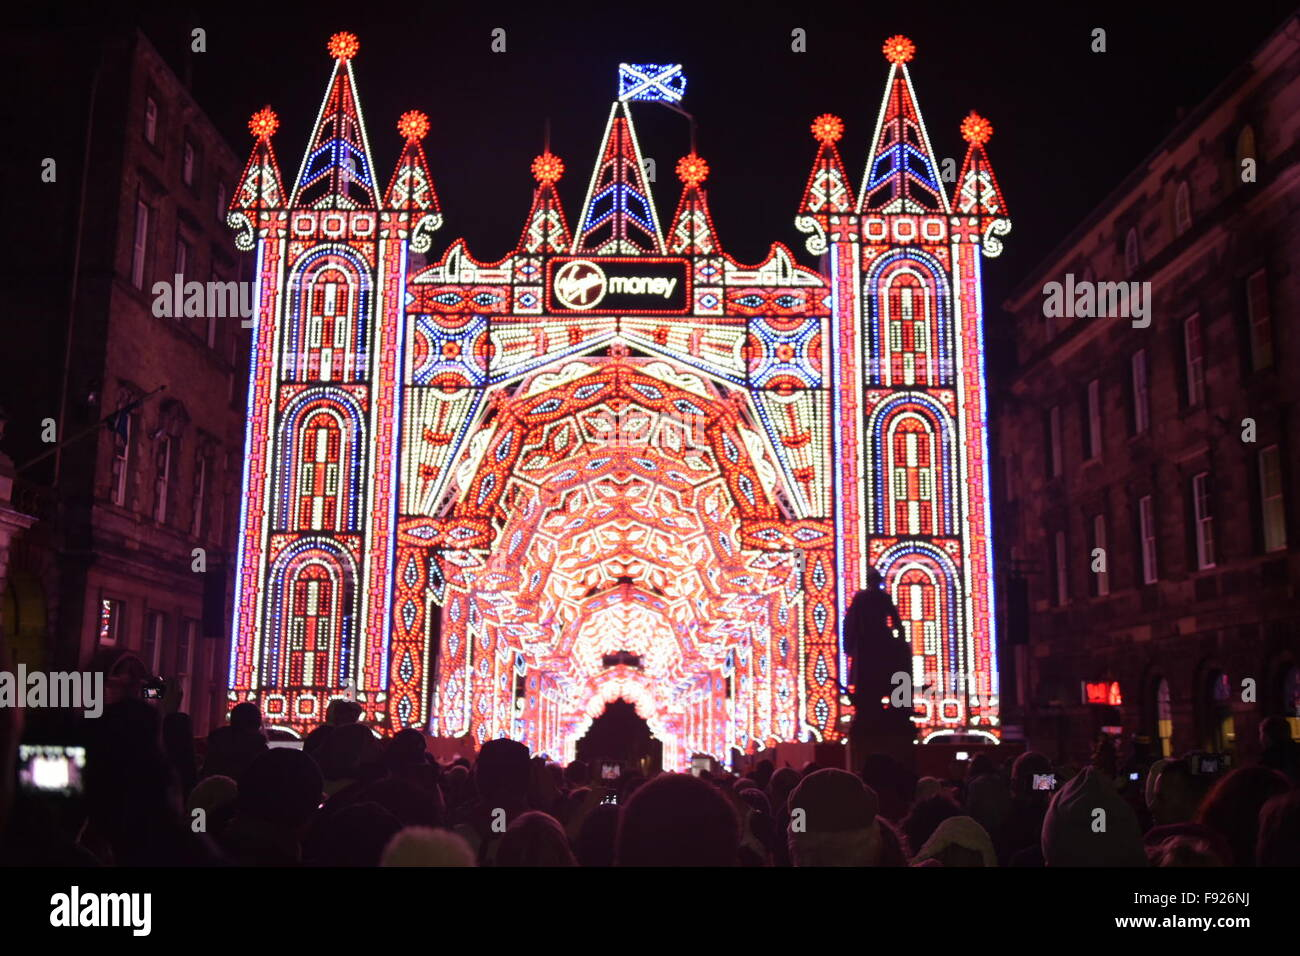 Edinburgh, Scotland, UK. 13th December, 2015. The Street of Light Christmas light show on the Royal Mile in Edinburgh: - Stock Image